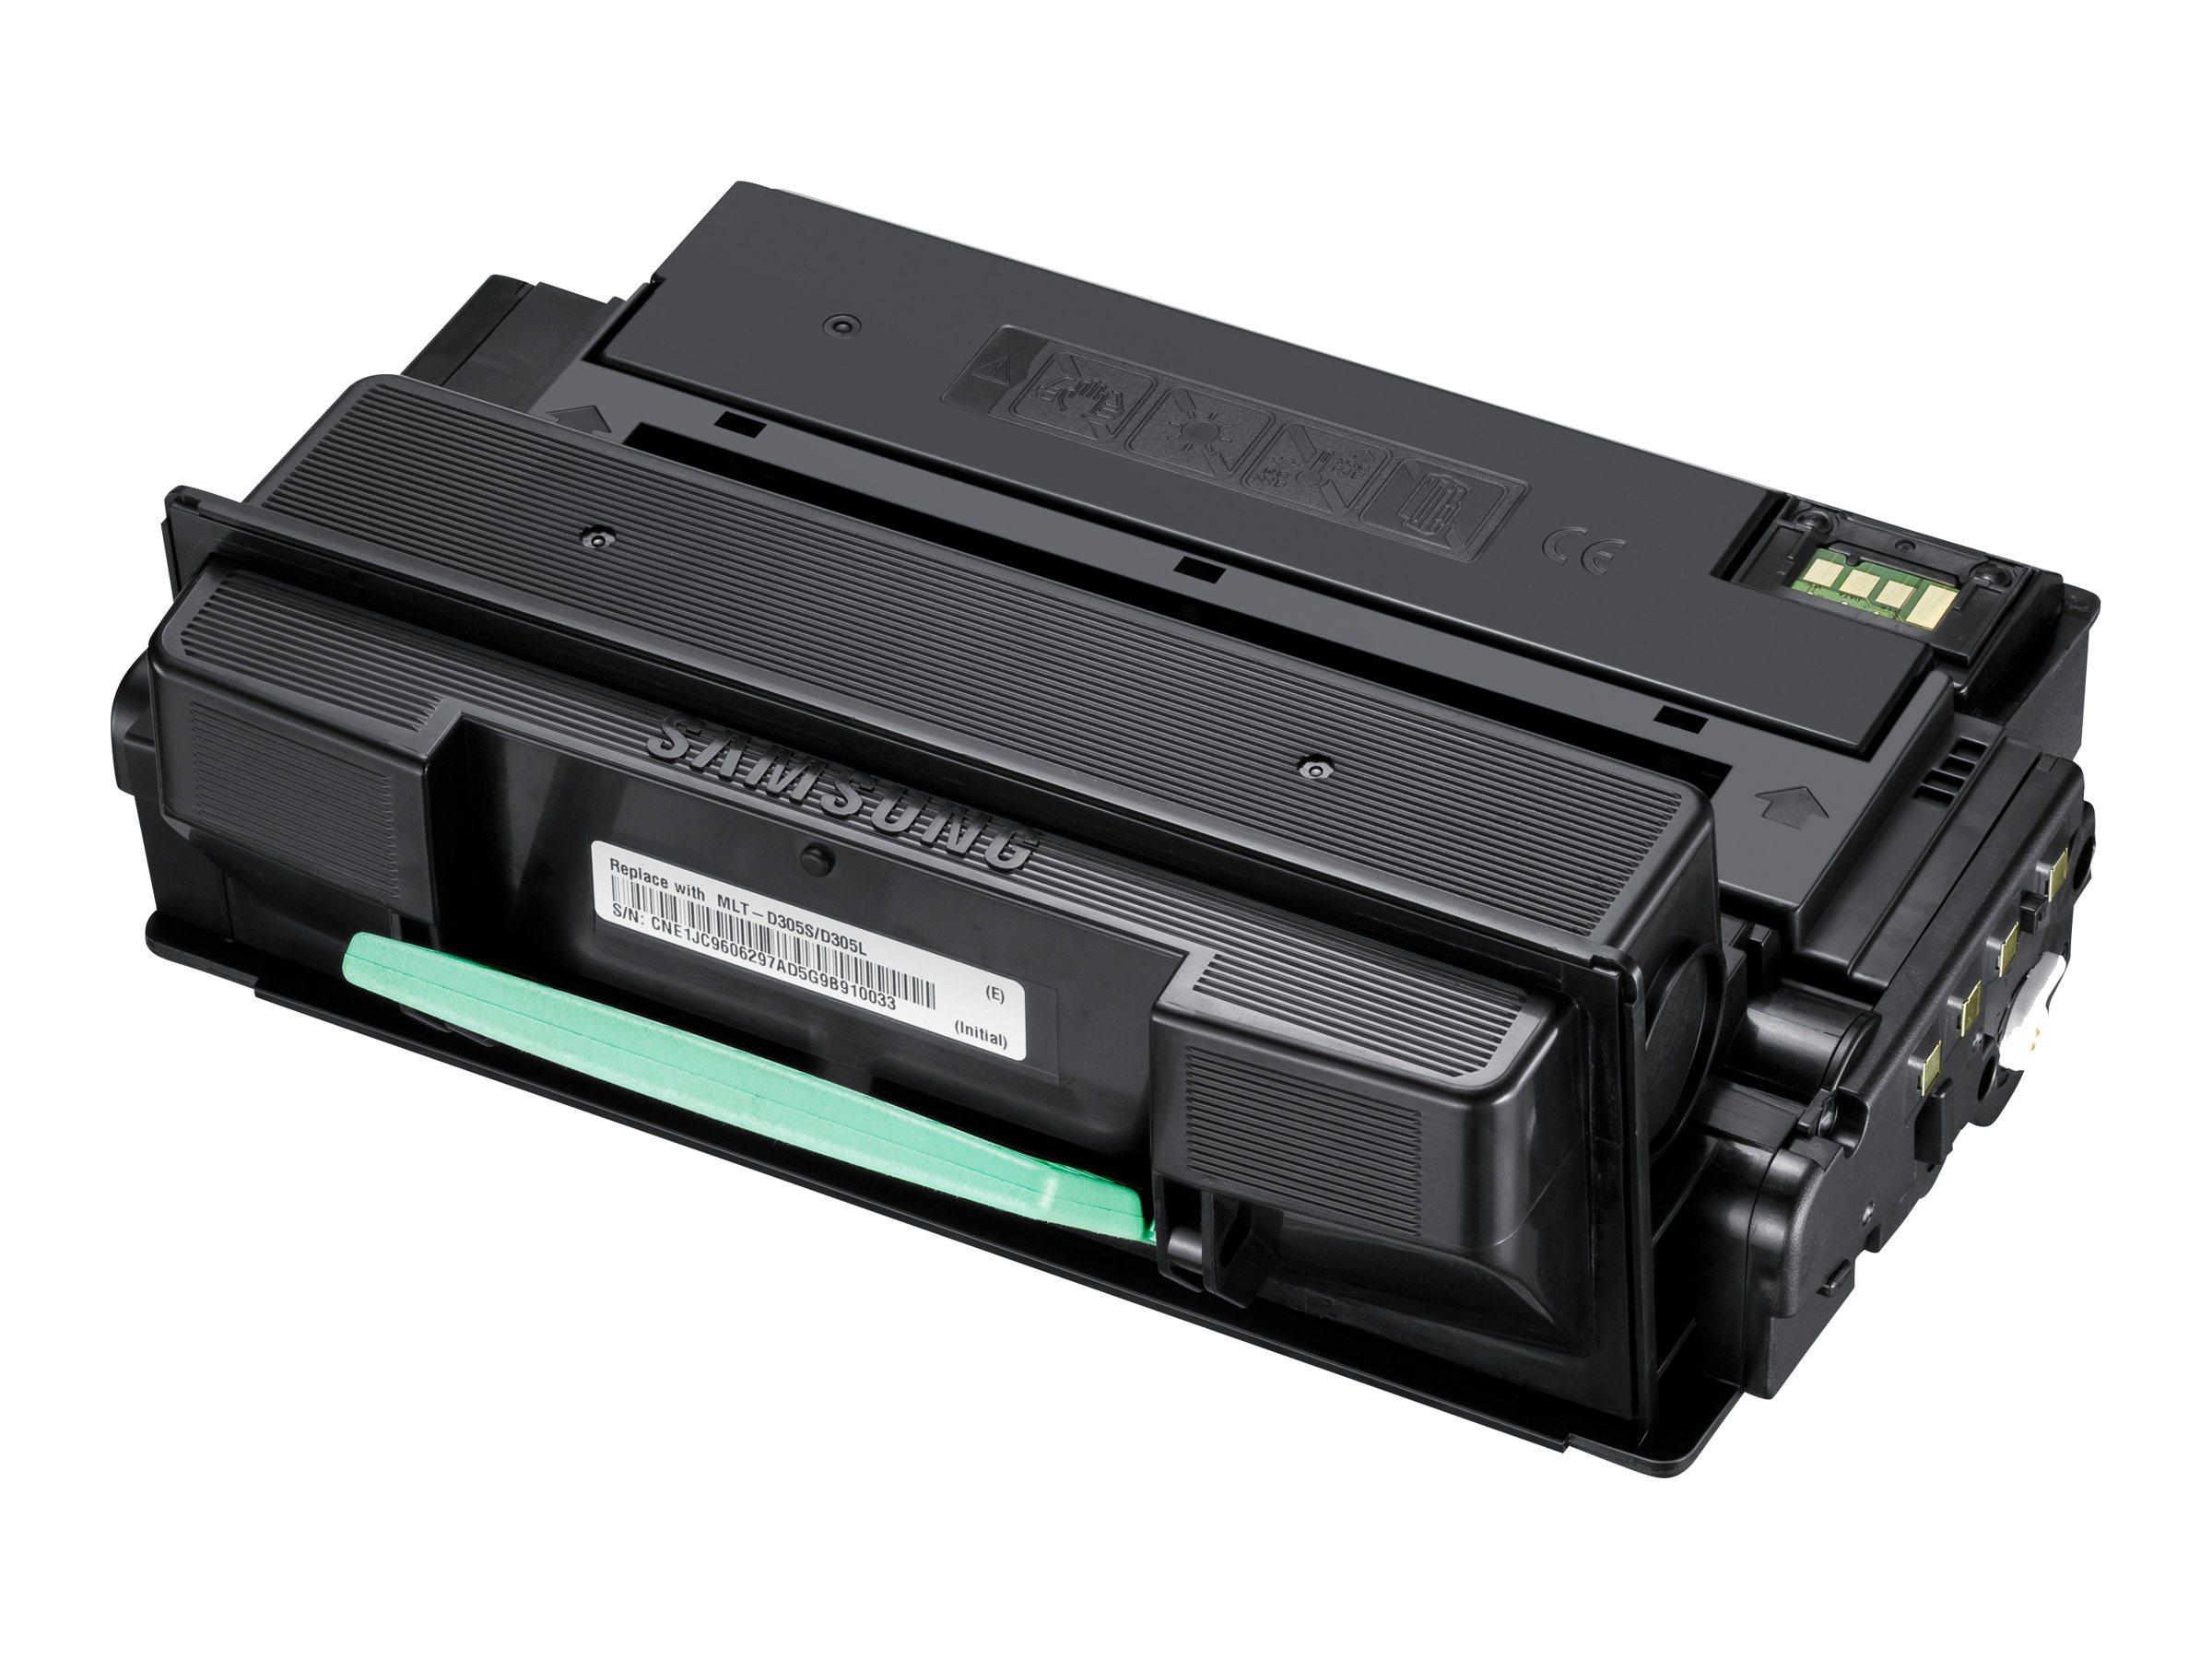 Samsung Black Toner Cartridge for ML-3750ND, MLT-D305L/XAA